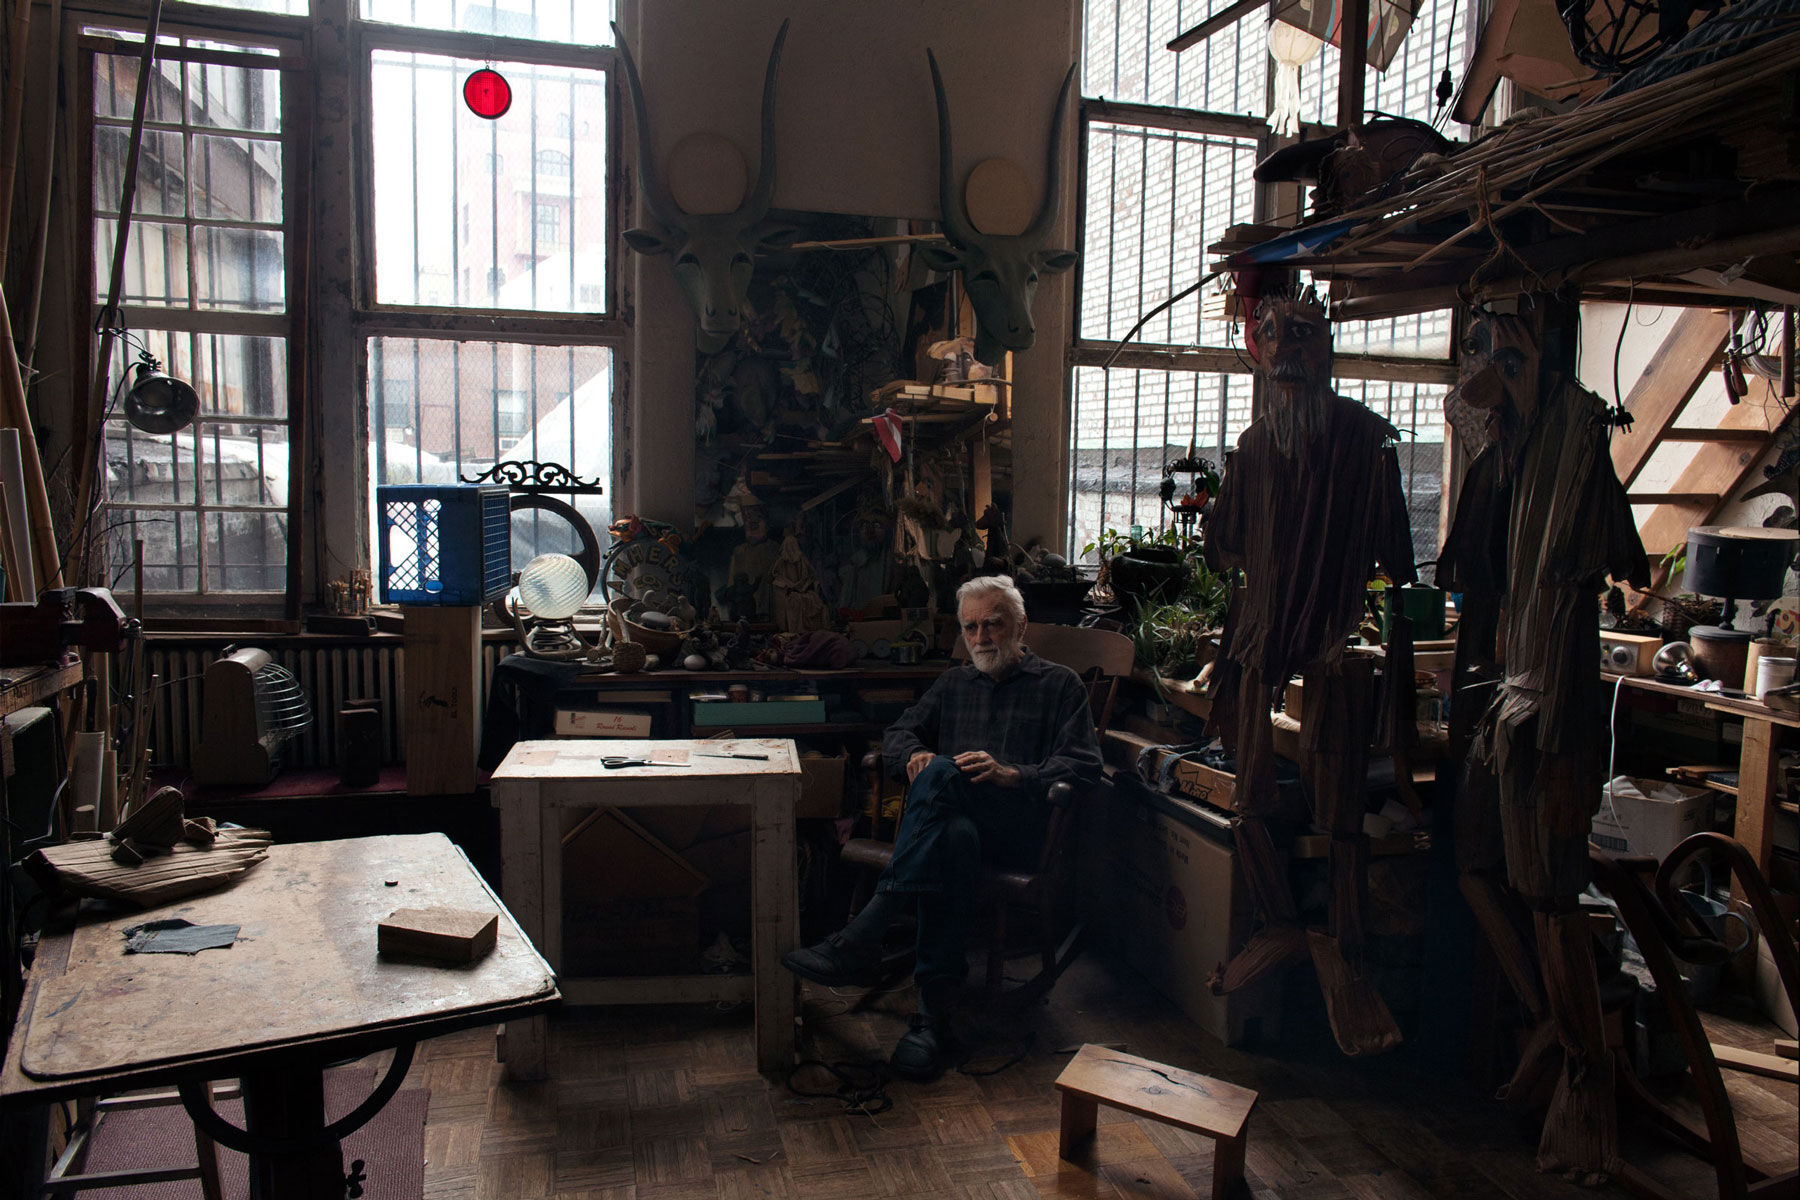 Theater artist Ralph Lee, 83, loves spending time in his studio located in the apartment he moved into with his wife and three children in 1970. He curates a rotating array of his fantastical puppets in an unused guard booth in the Westbeth courtyard. Photo by Frankie Alduino.